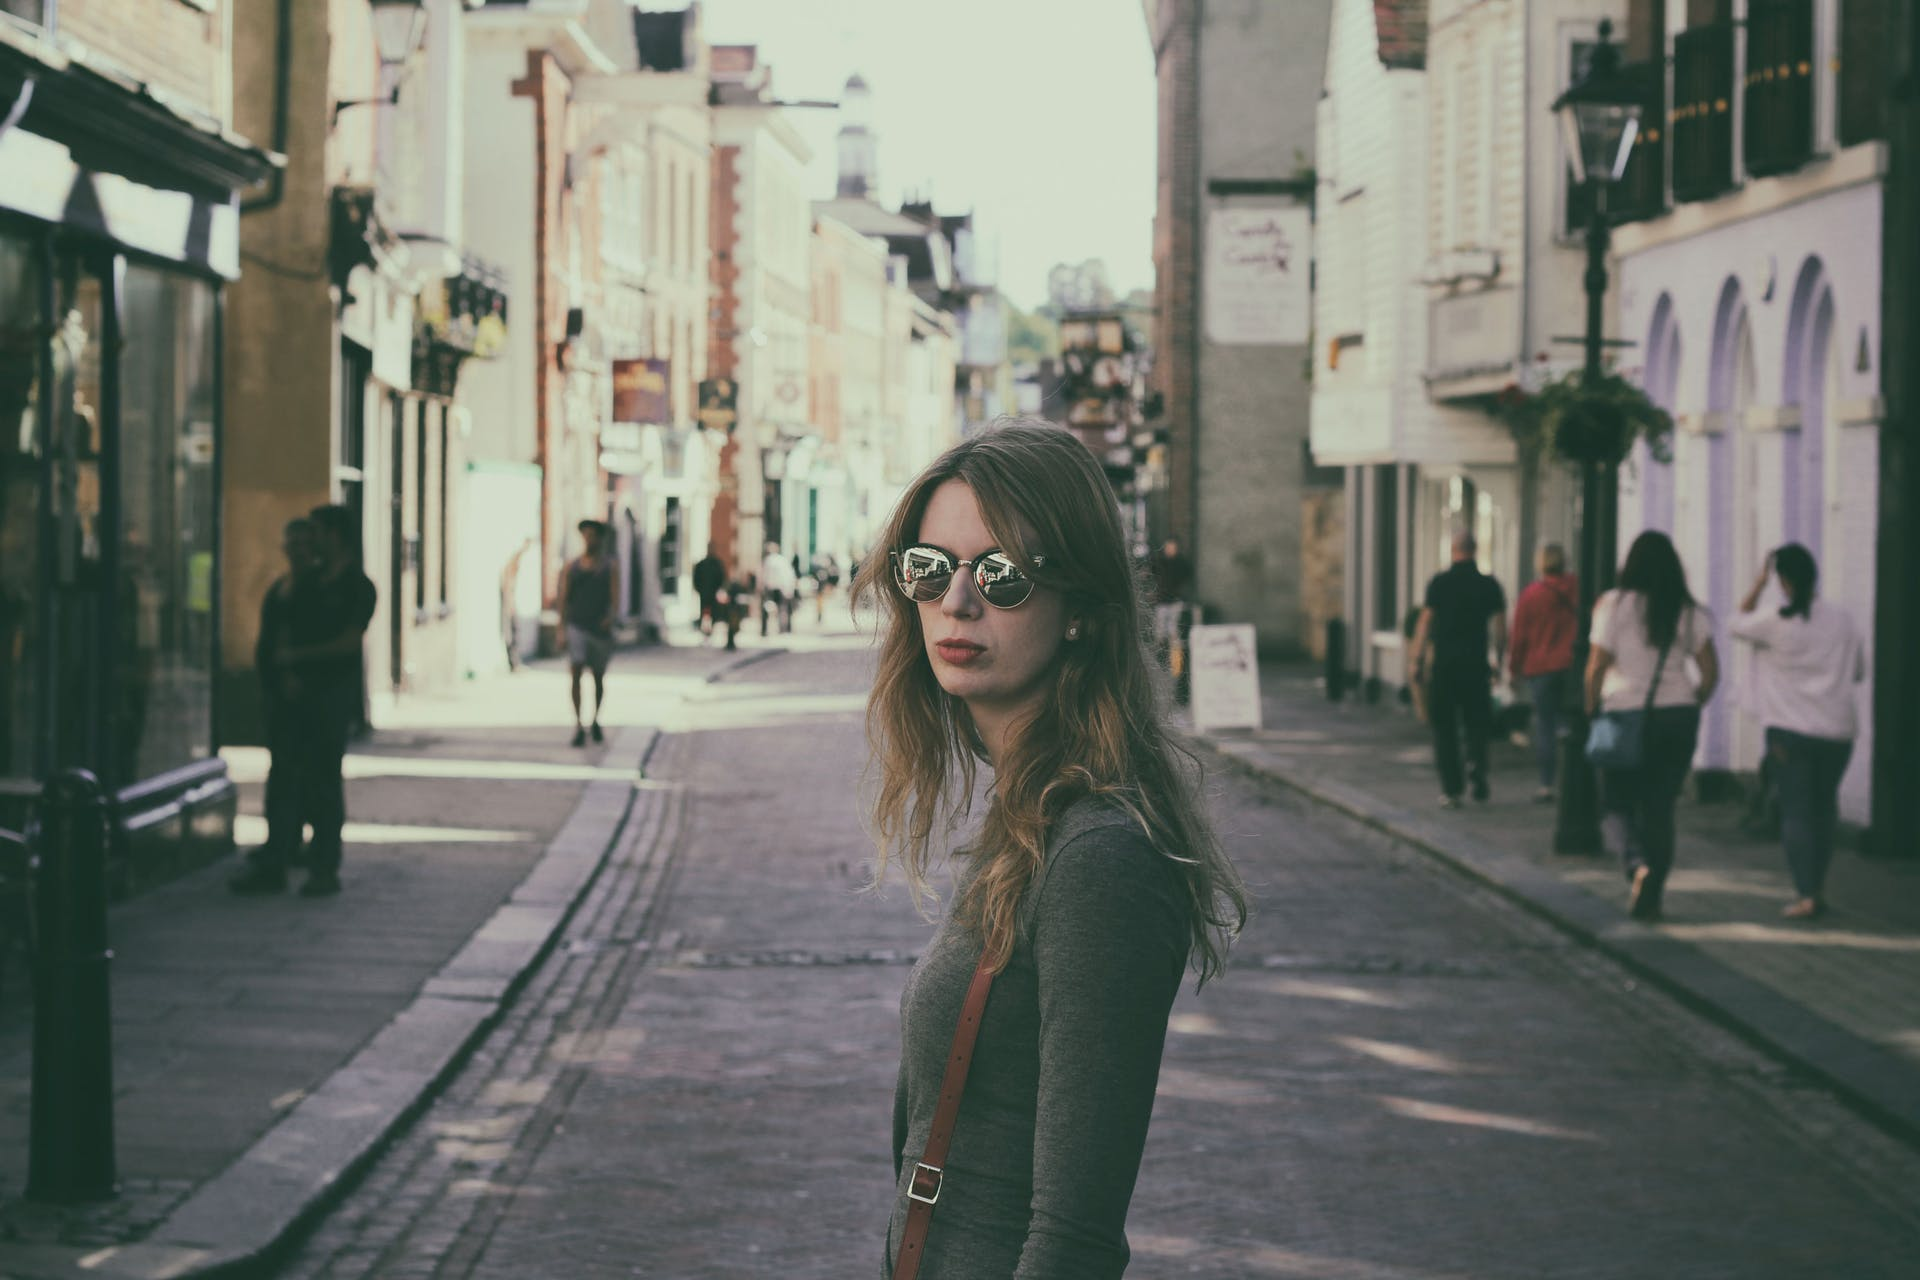 sunglasses person urban pavement downtown city adult buildings girl woman